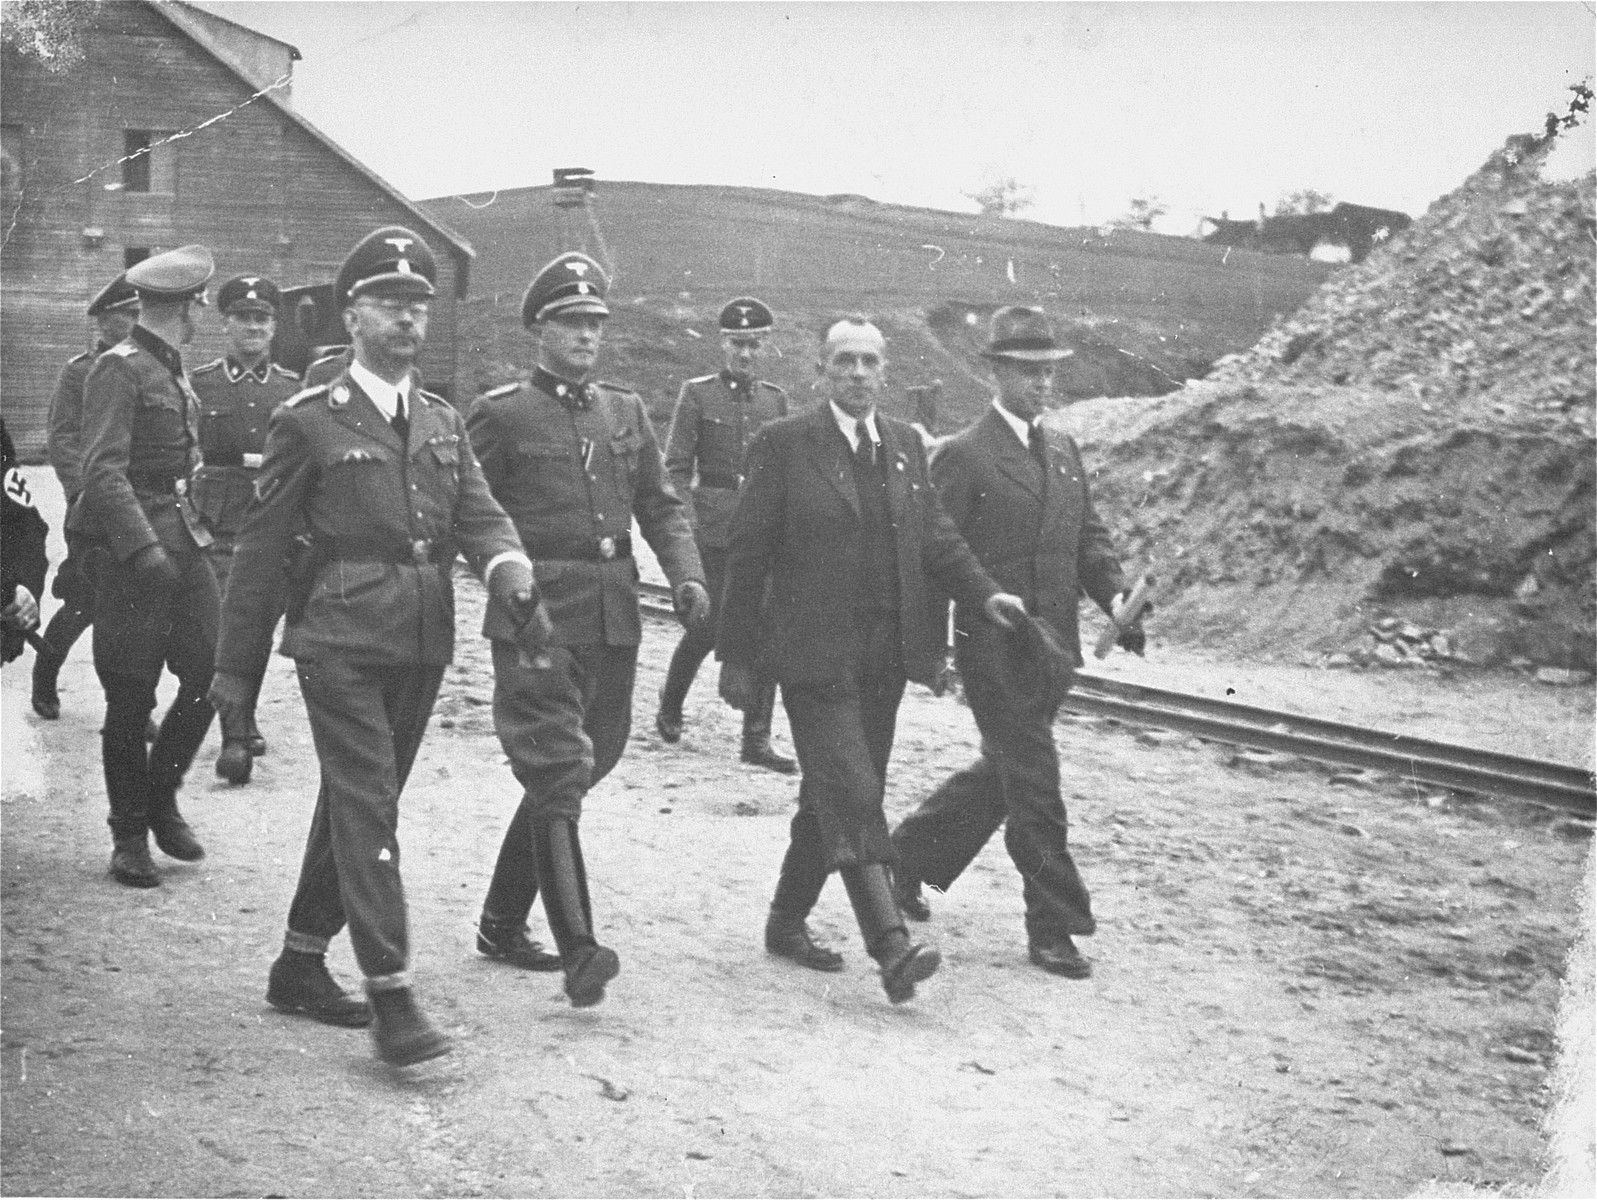 Reichsfuehrer SS Heinrich Himmler and his entourage inspect the Wiener Graben quarry during an official tour of the Mauthausen concentration camp.  Himmler is pictured first on the left.  Next to him is SS Sturmbannfuehrer Franz Ziereis, Commandant of Mauthausen.